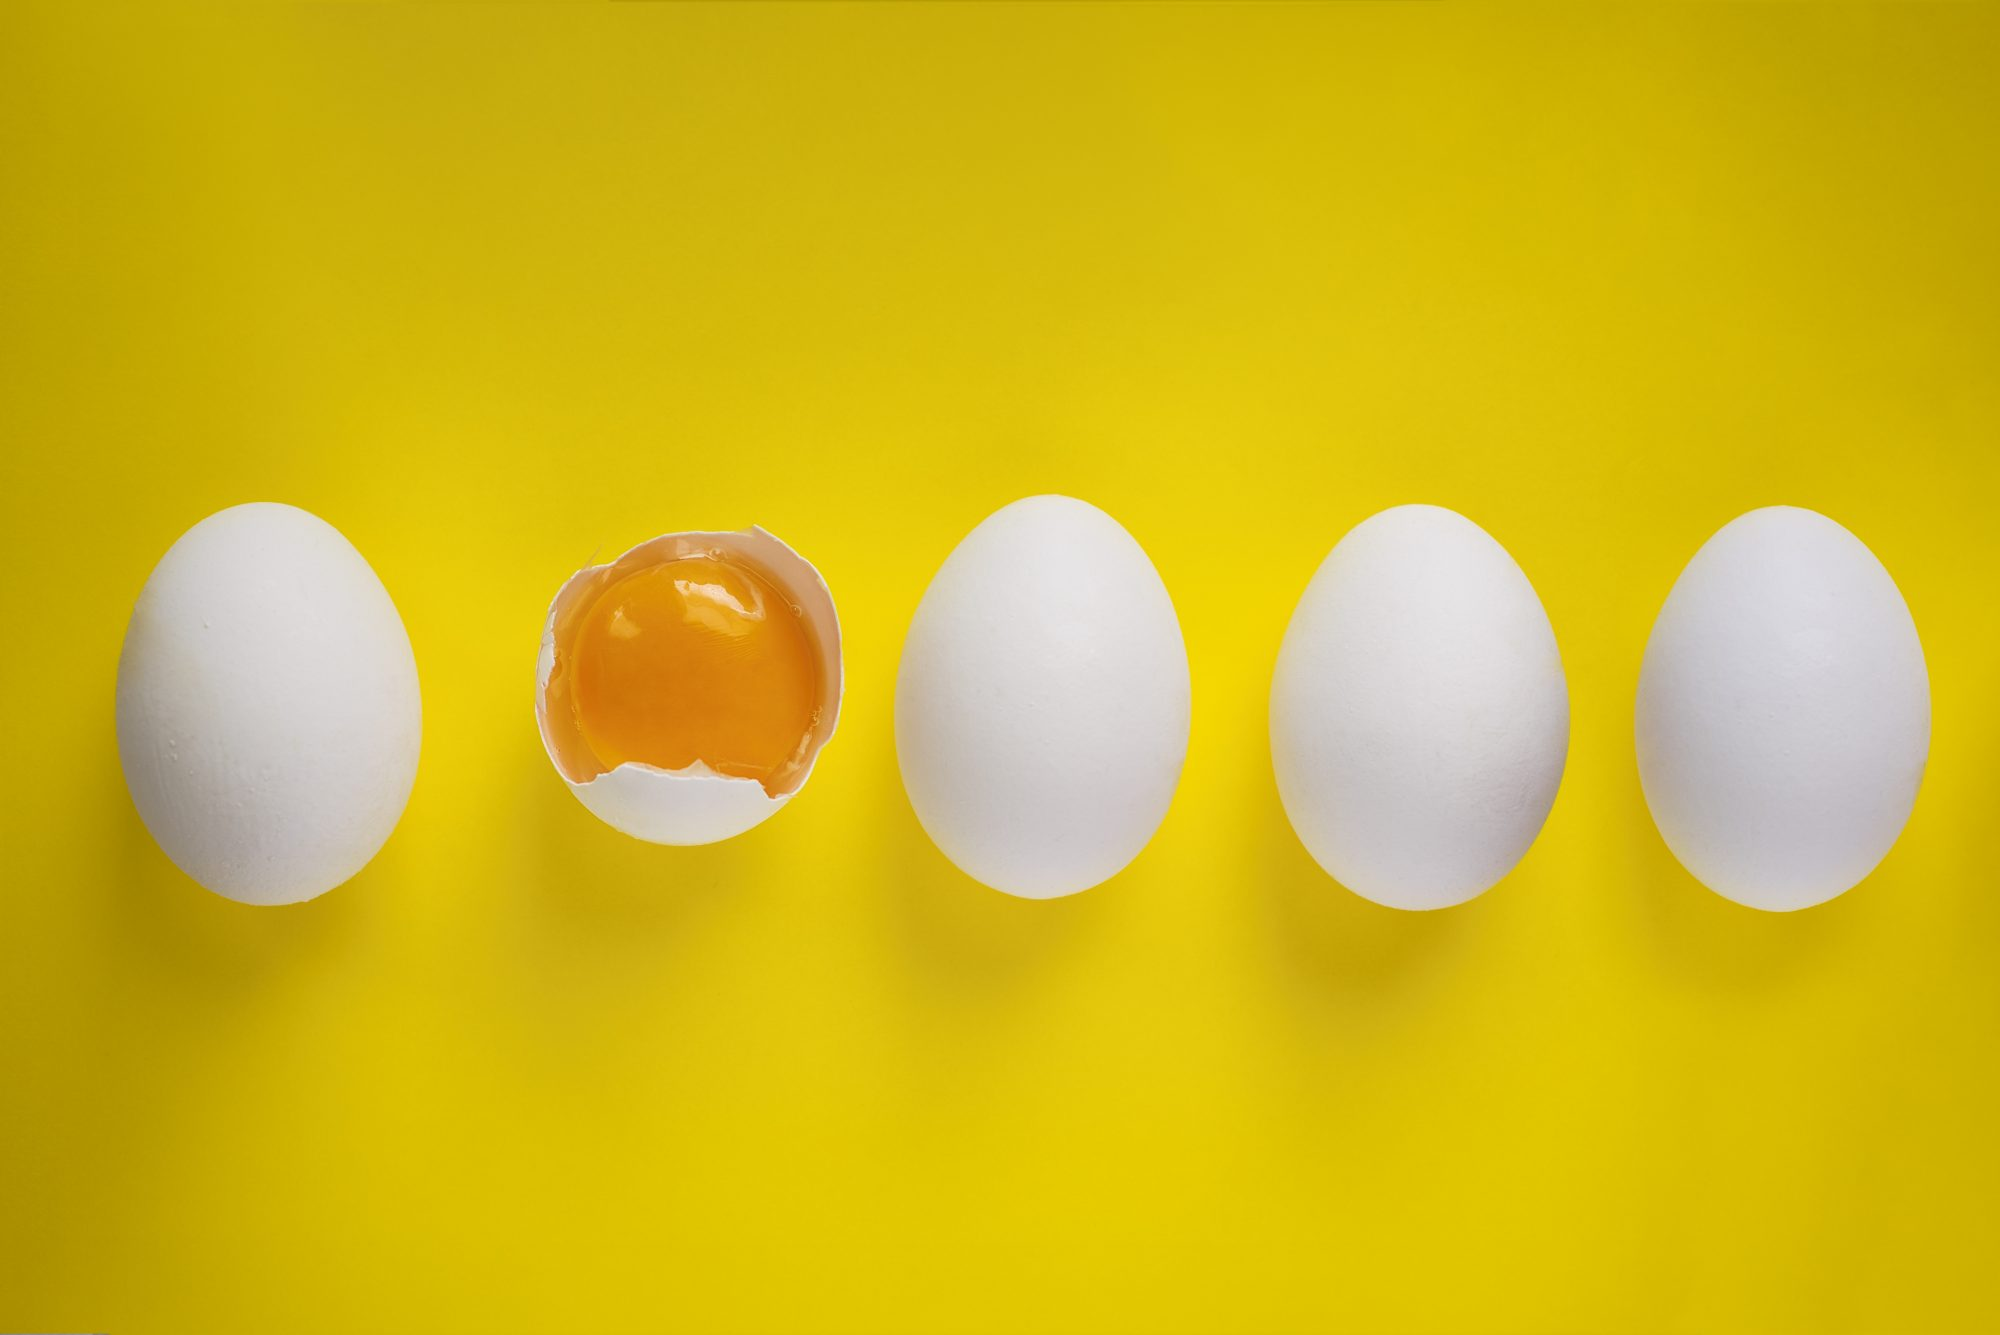 Egg on Yellow Background Getty 3/26/20